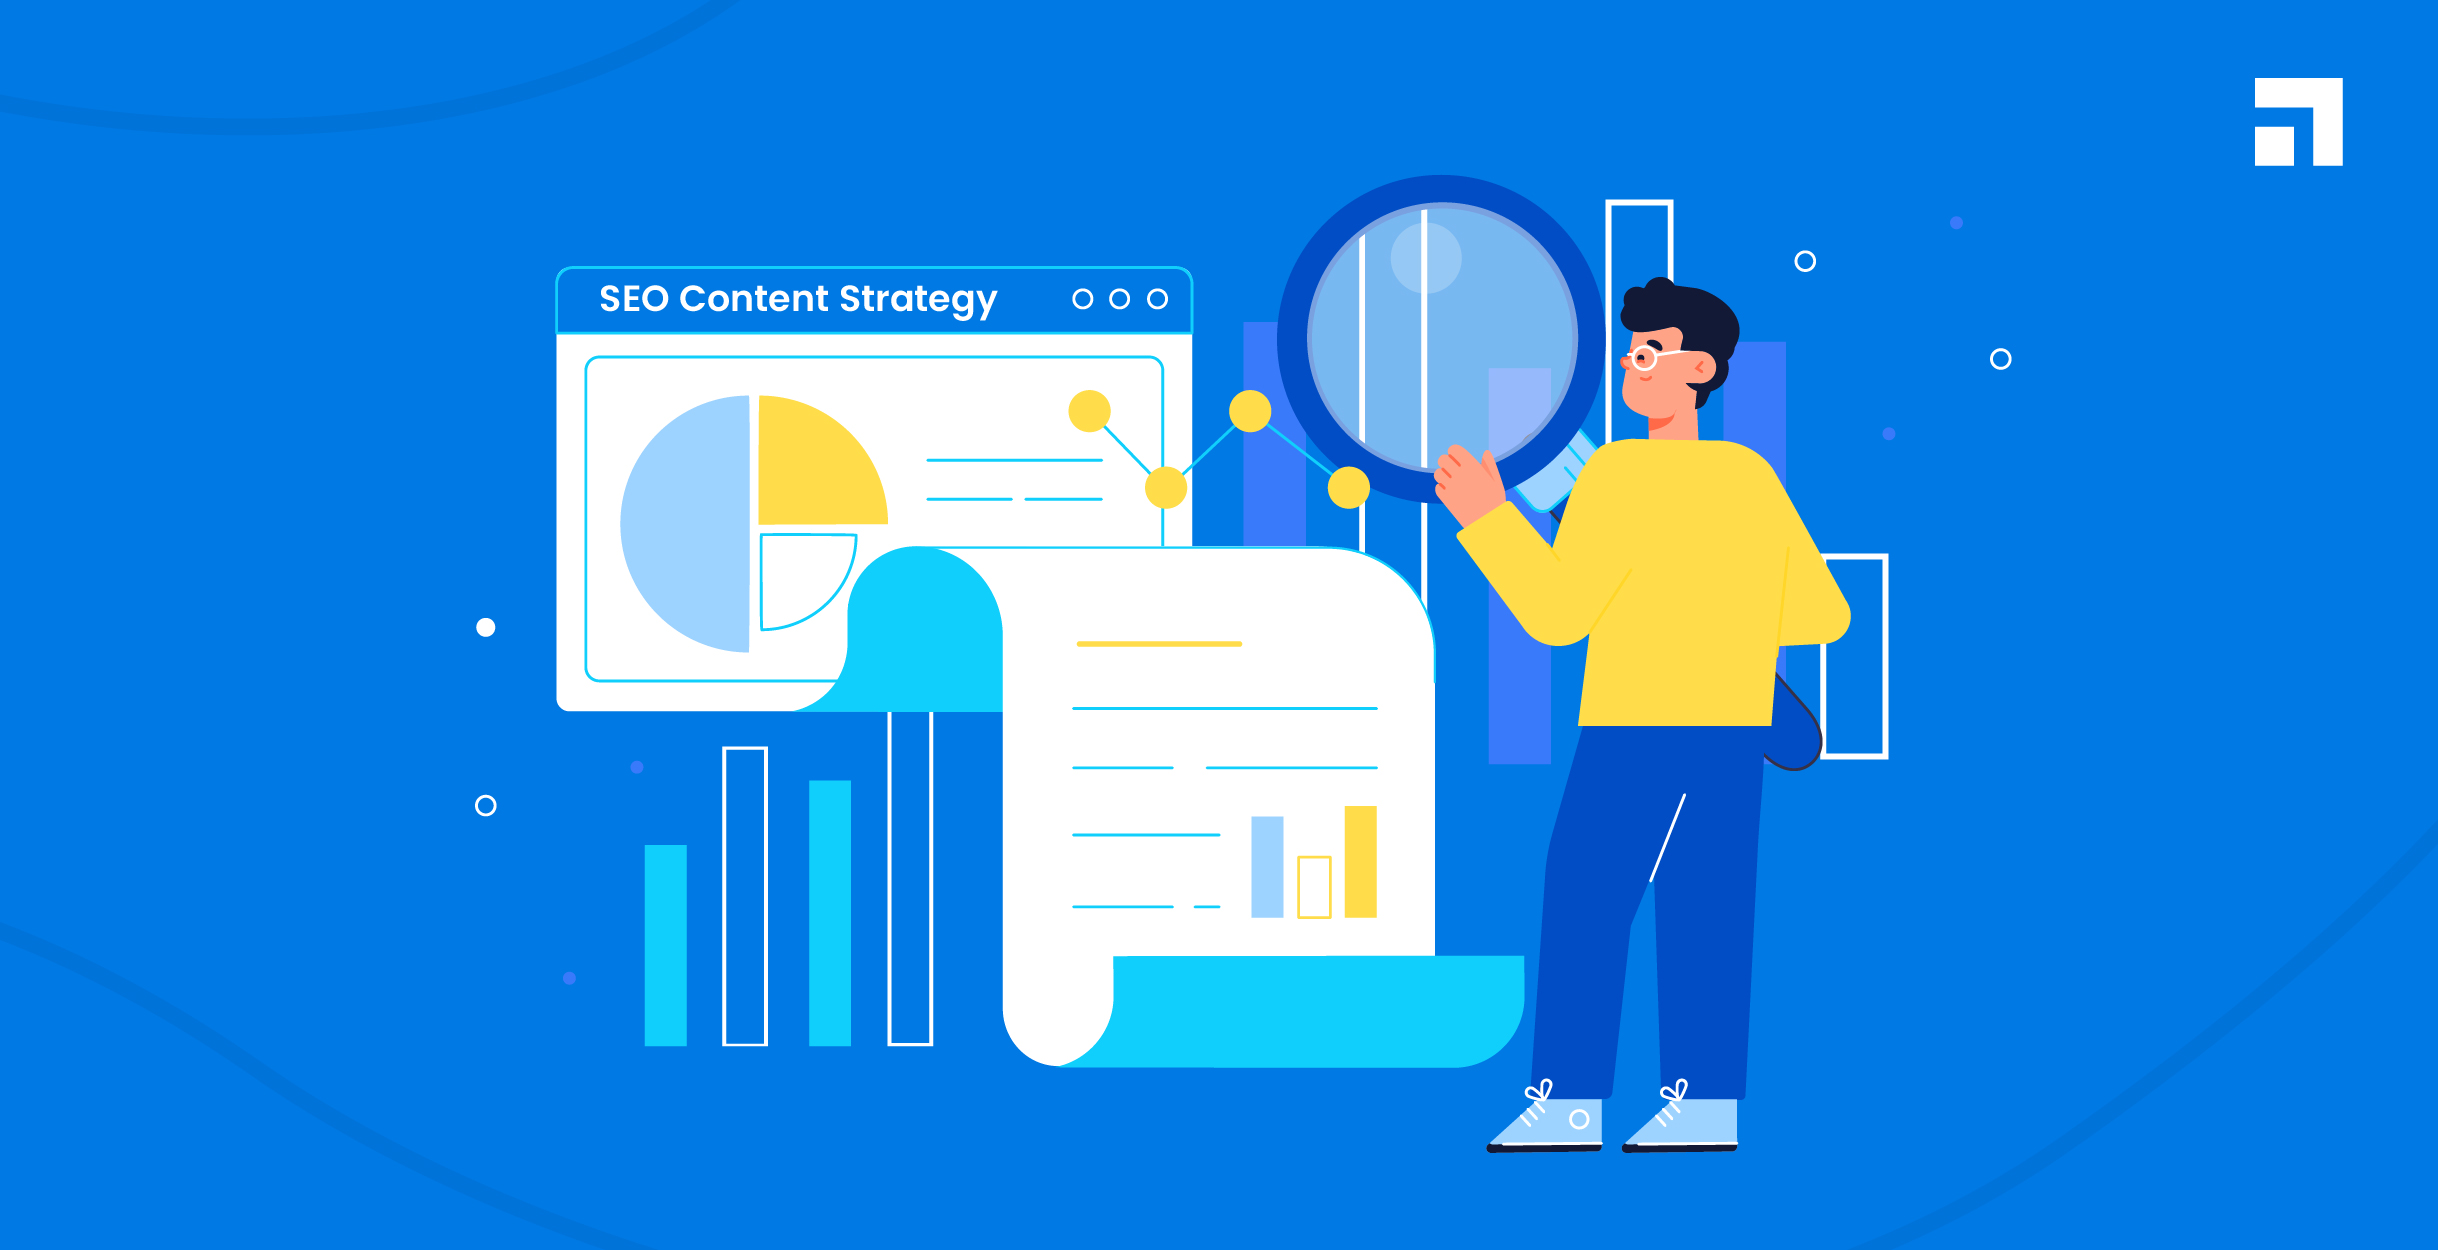 How to build a SEO Content Strategy to Boost Traffic and Revenue